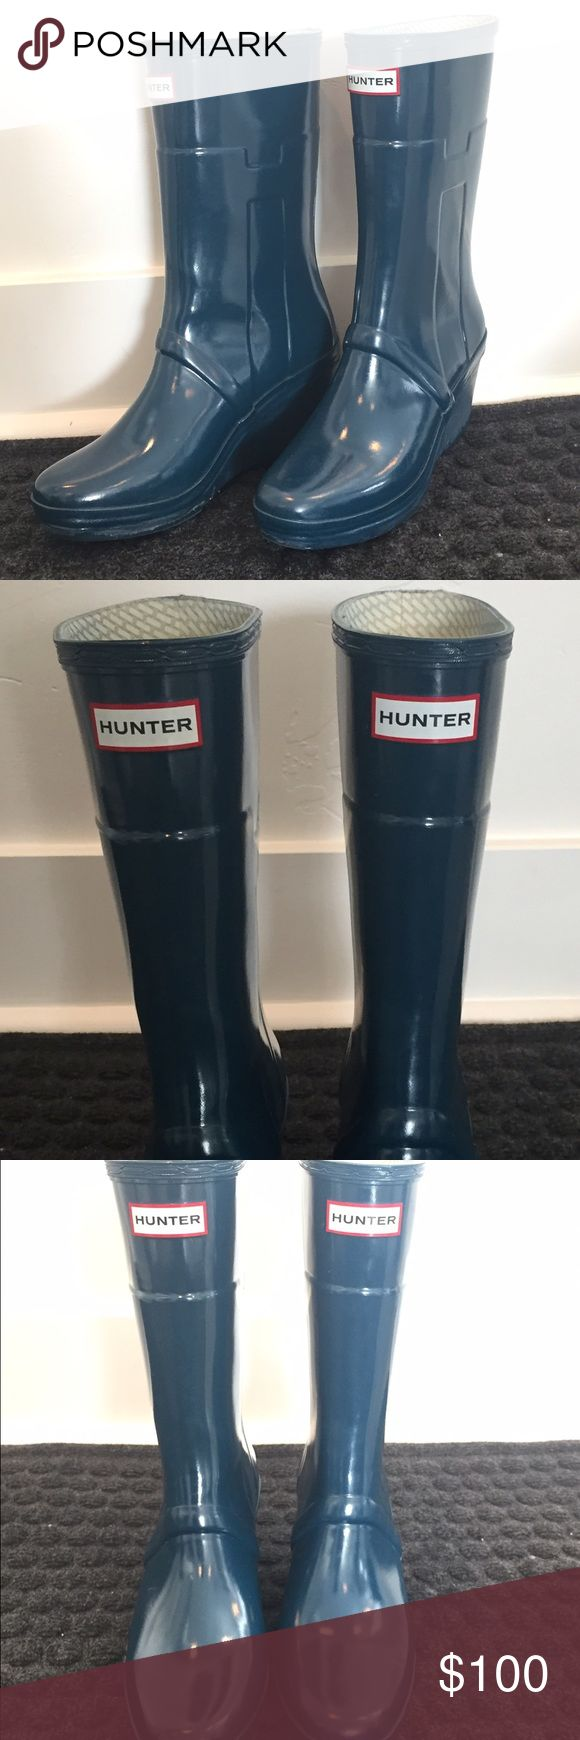 Hunter boots kellan rare size 9 Hunter boots kellan size 9. Rarely worn. Worn only with hunter boot liners. Slight scuffs. Nothing major. Great condition. 100% authentic. I offer a 20% bundle discount on 2 or more items and usually ship out next day (same day if you buy before the postman does the package pickup)! Hunter Boots Shoes Winter & Rain Boots